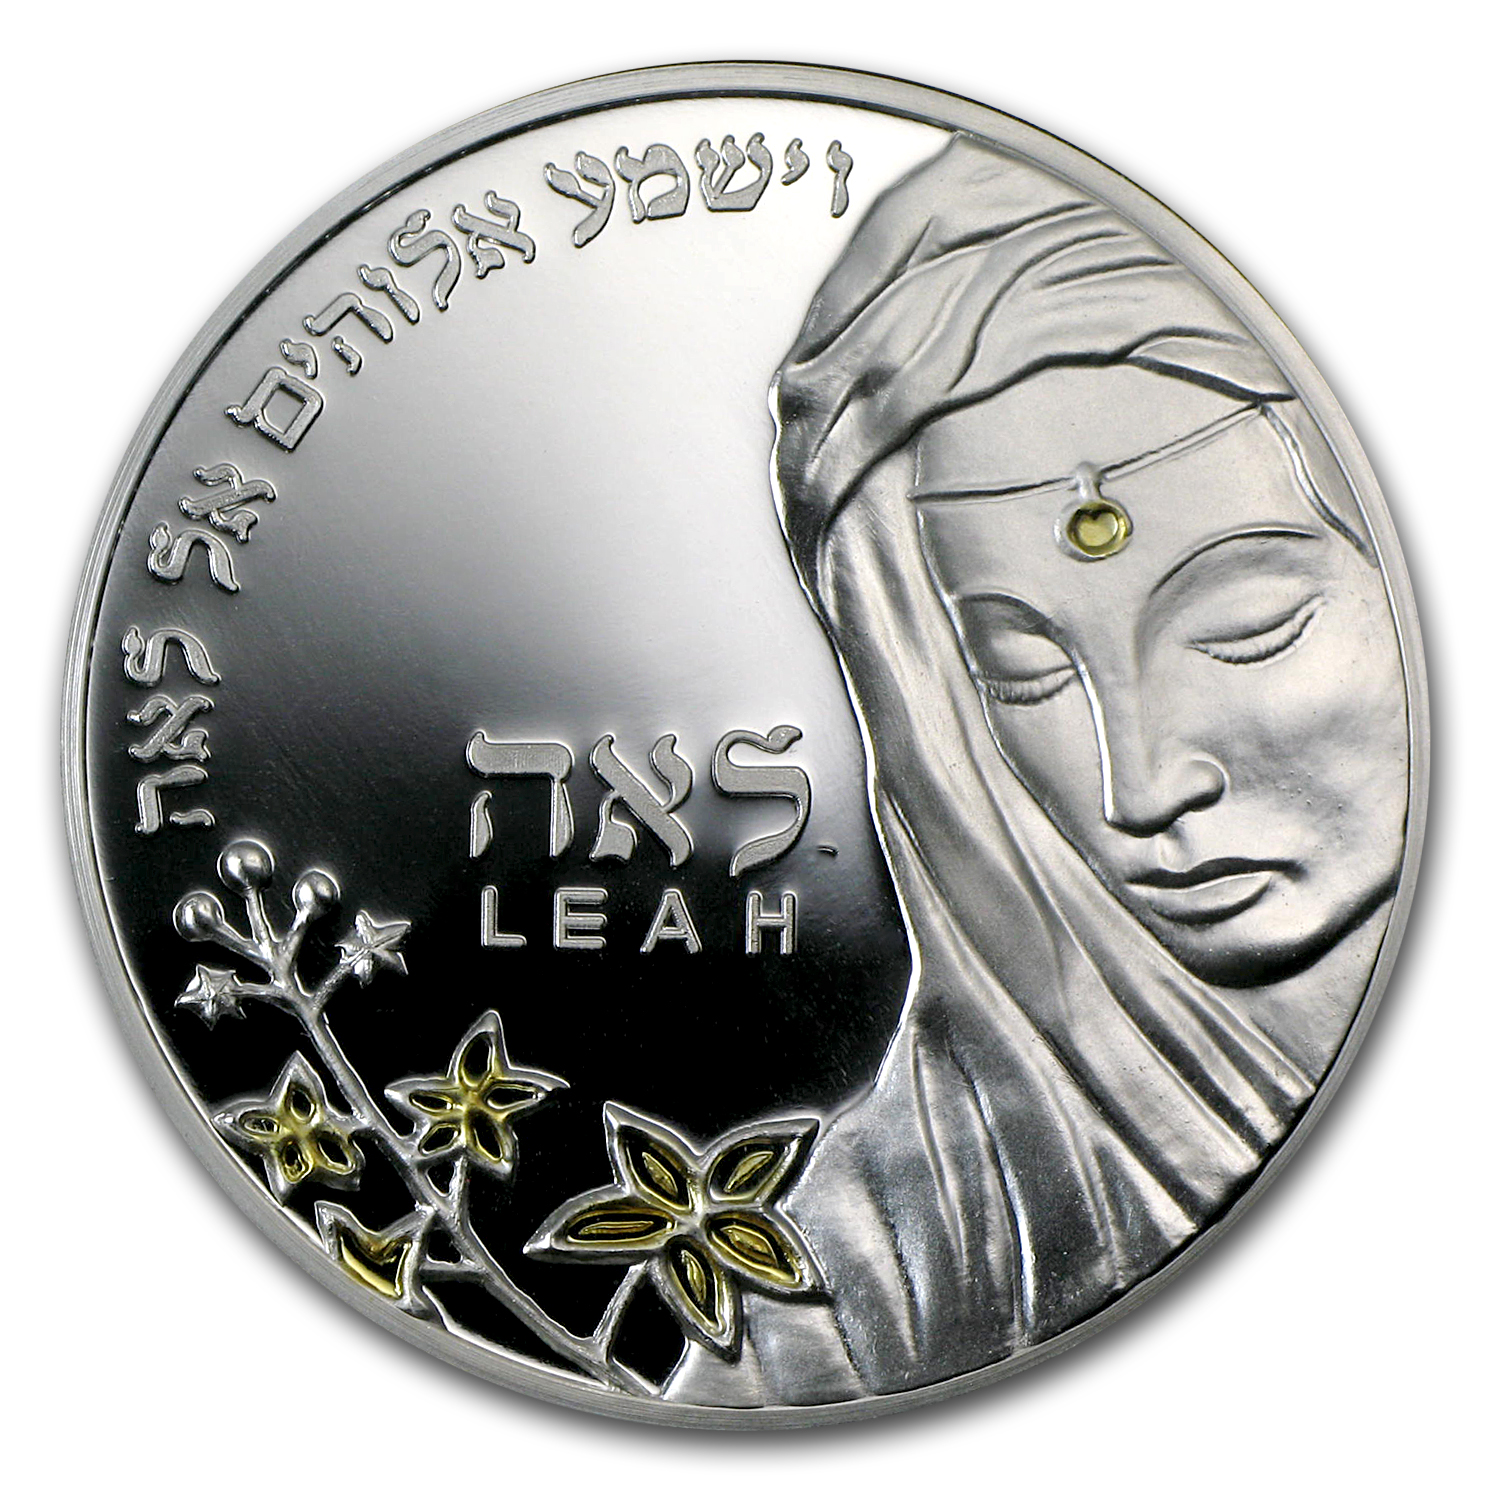 2008 Israel Leah Silver Medal Proof (ASW .643)